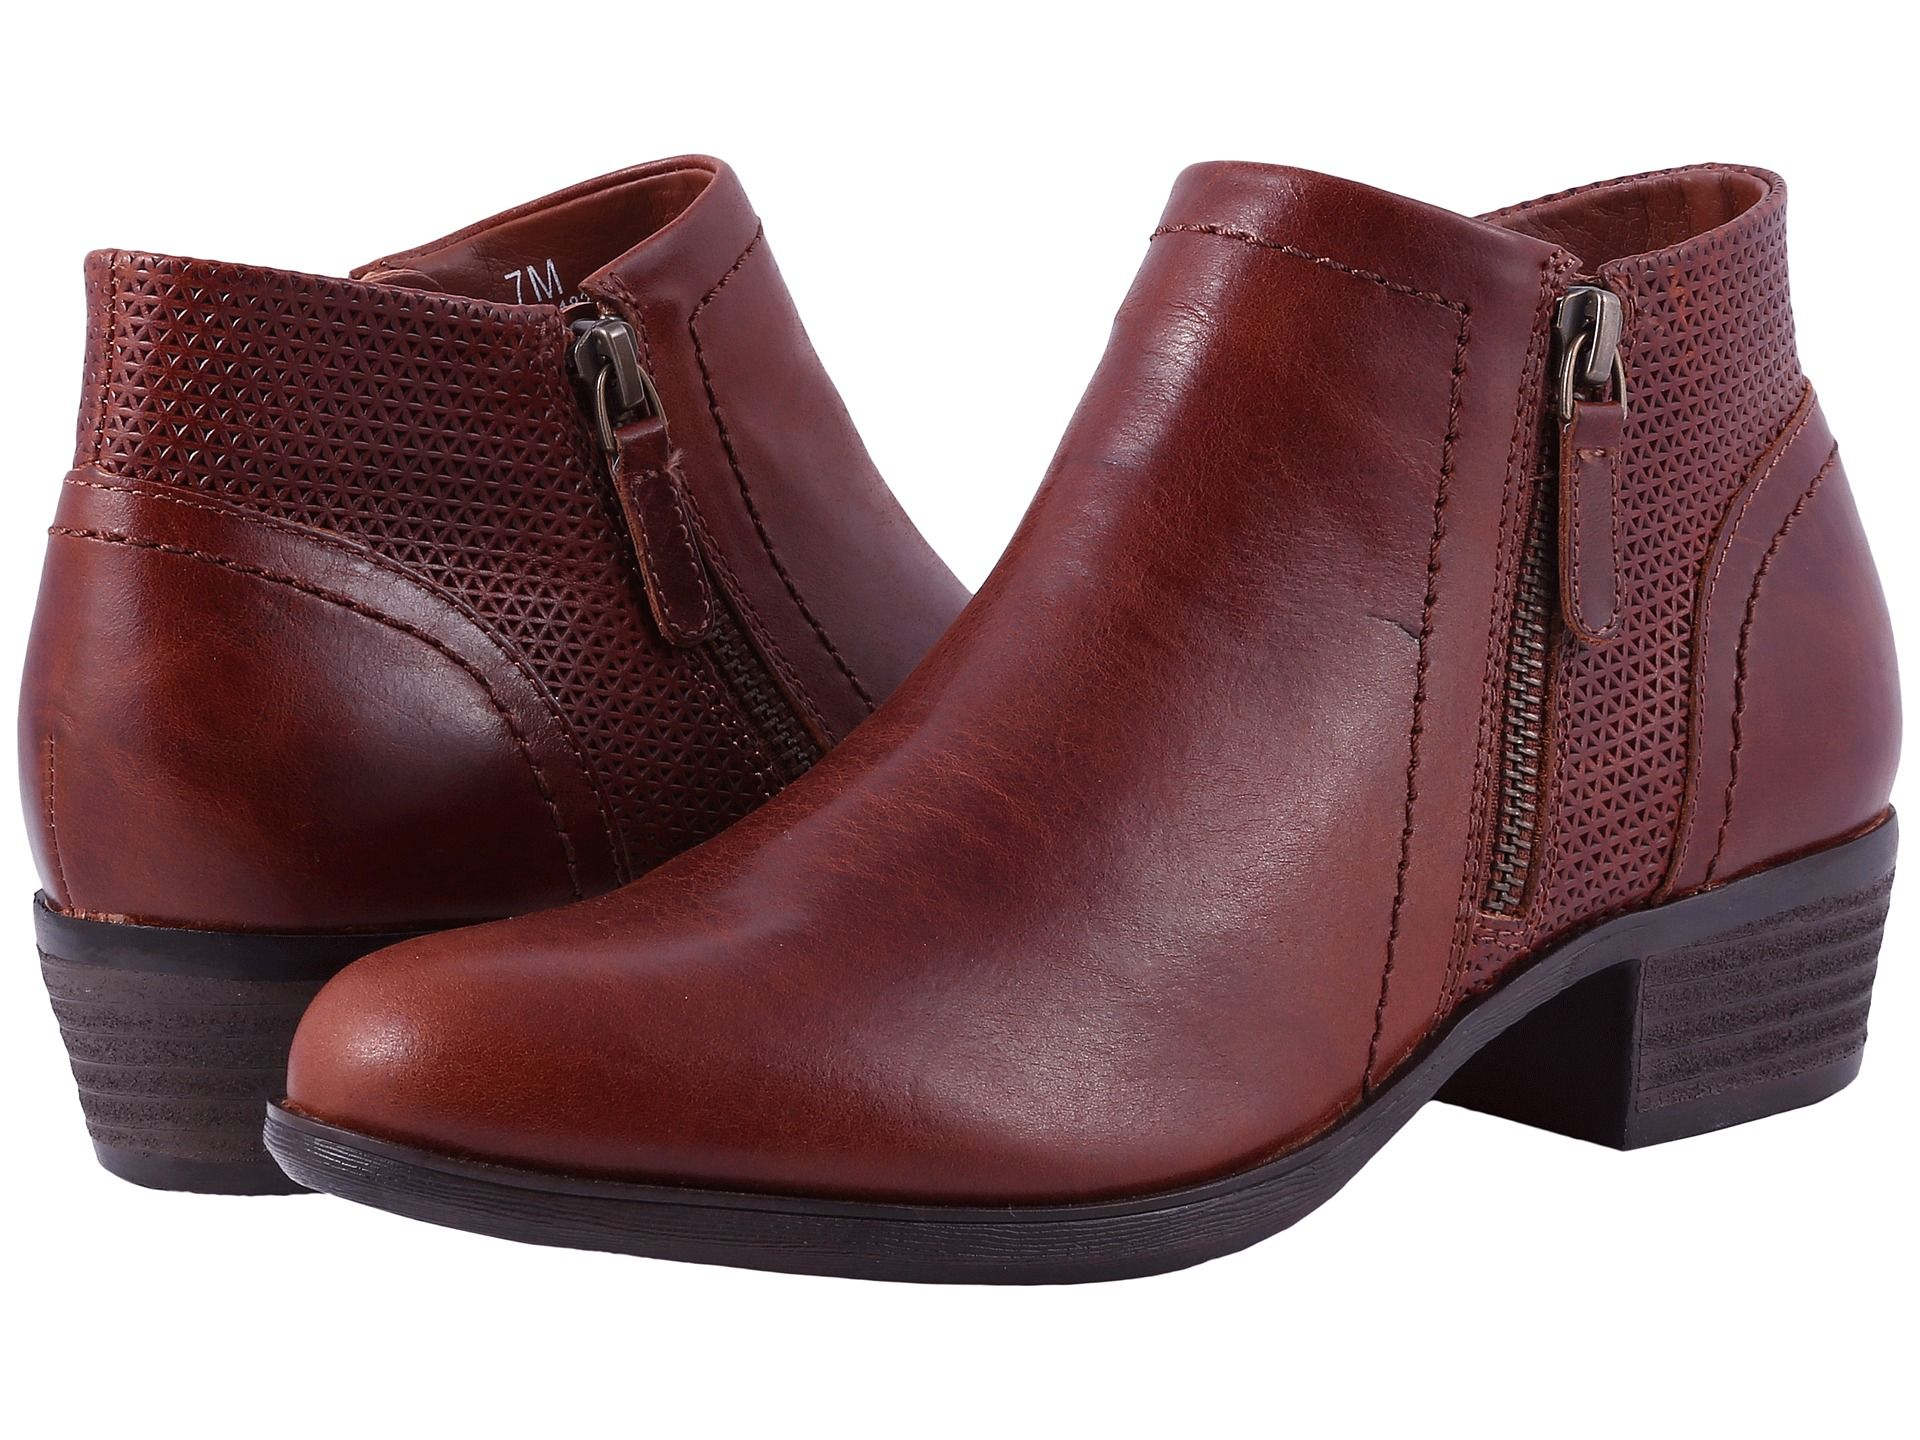 Rockport Cobb Hill Collection Cobb Hill Oliana Panel Boot Women's Shoes  Saddle Pull Up Leather